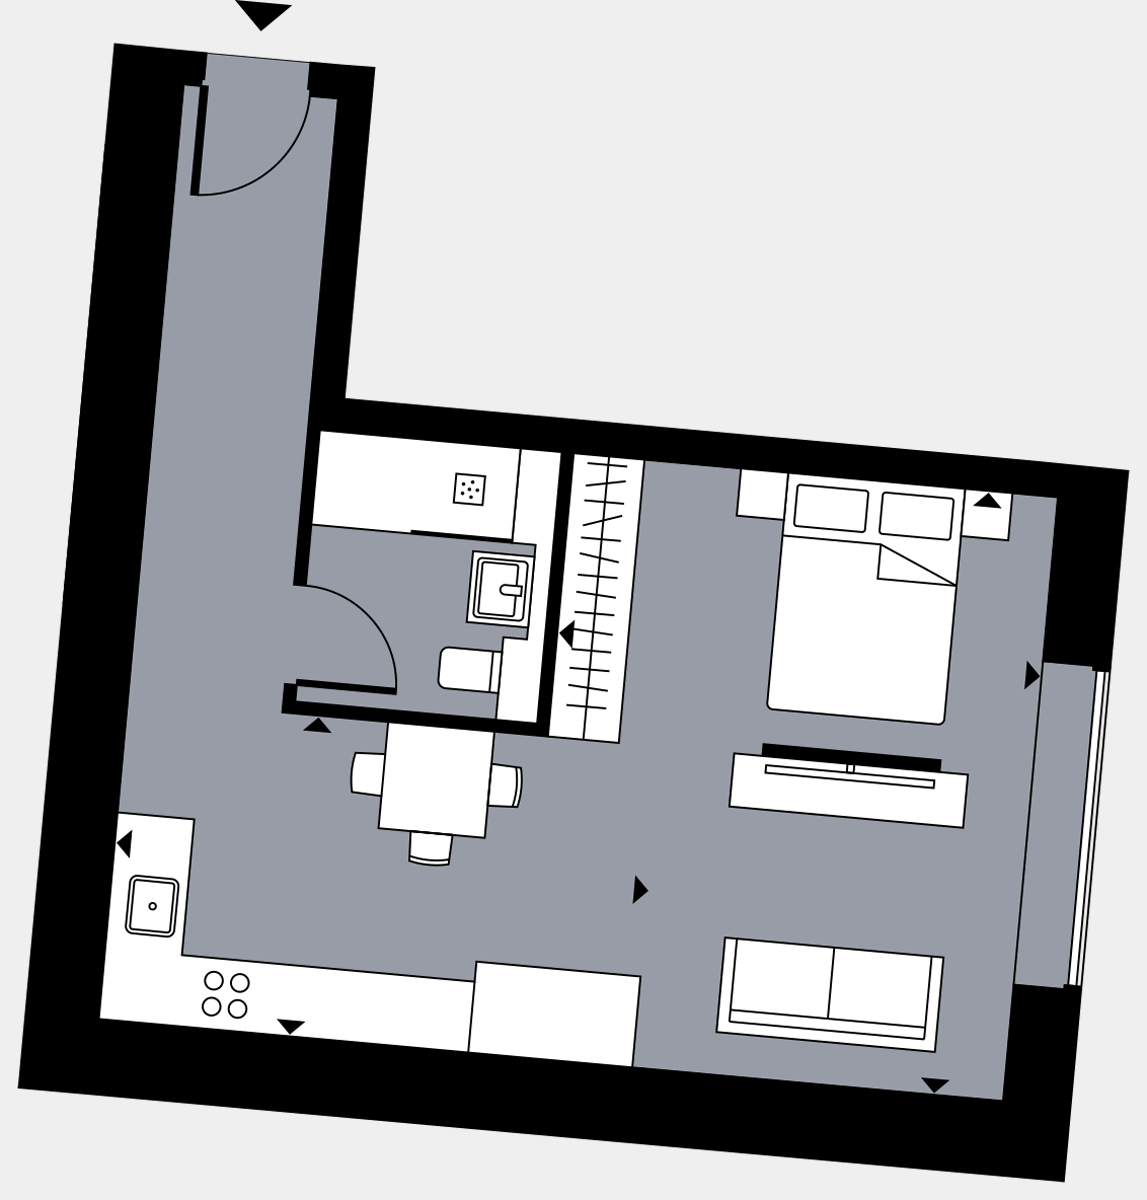 Brigade Court London SE1 Apartment floorplan - L1 10 Davies House